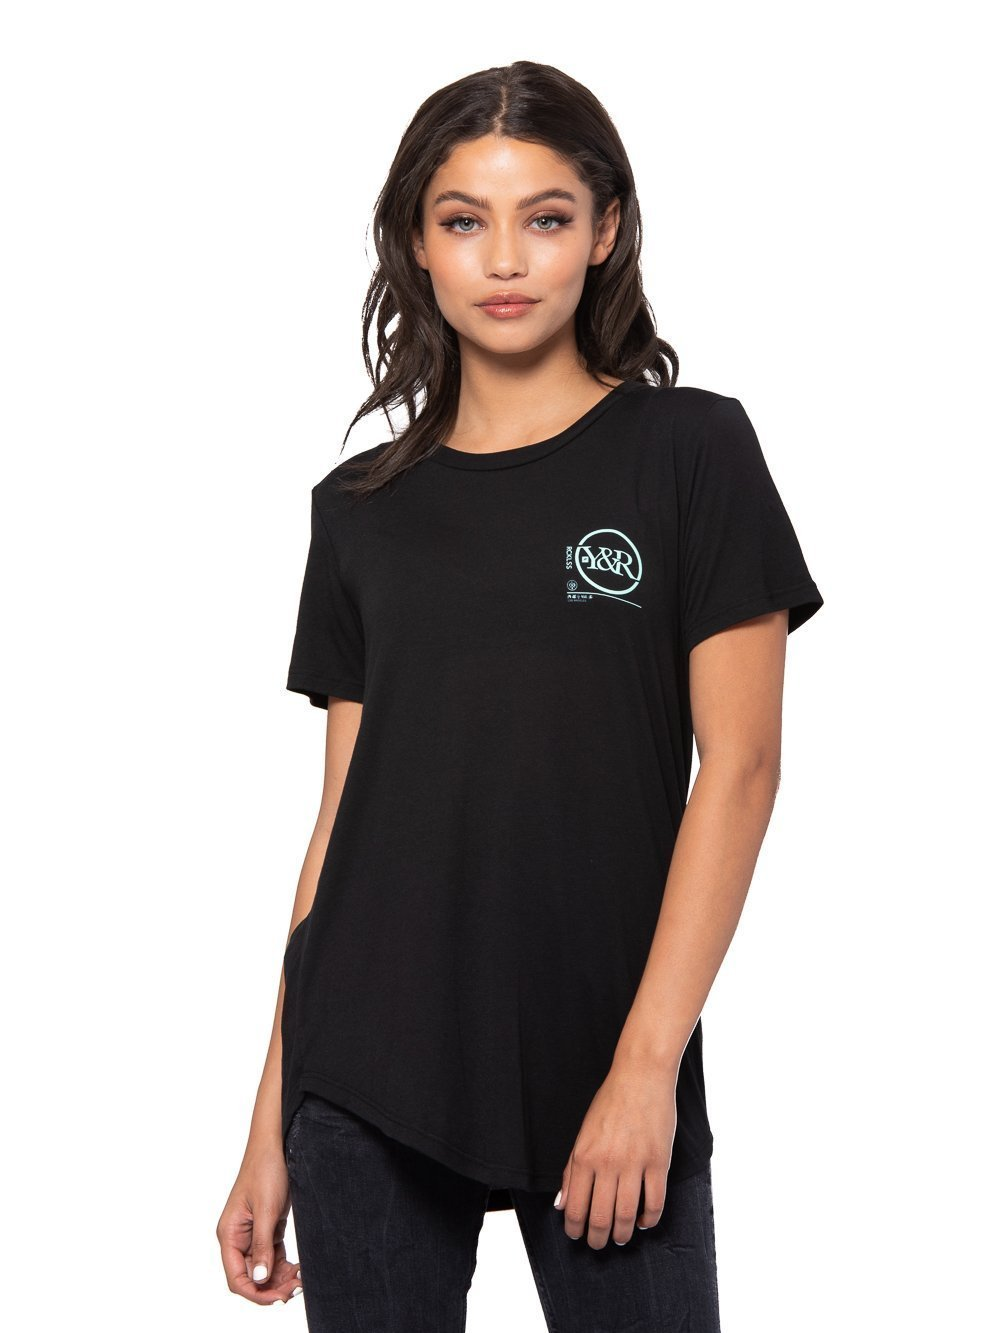 Young Reckless - Perspective Long Scoop Tee - Black - S - Womens - Tops - Tees - Black